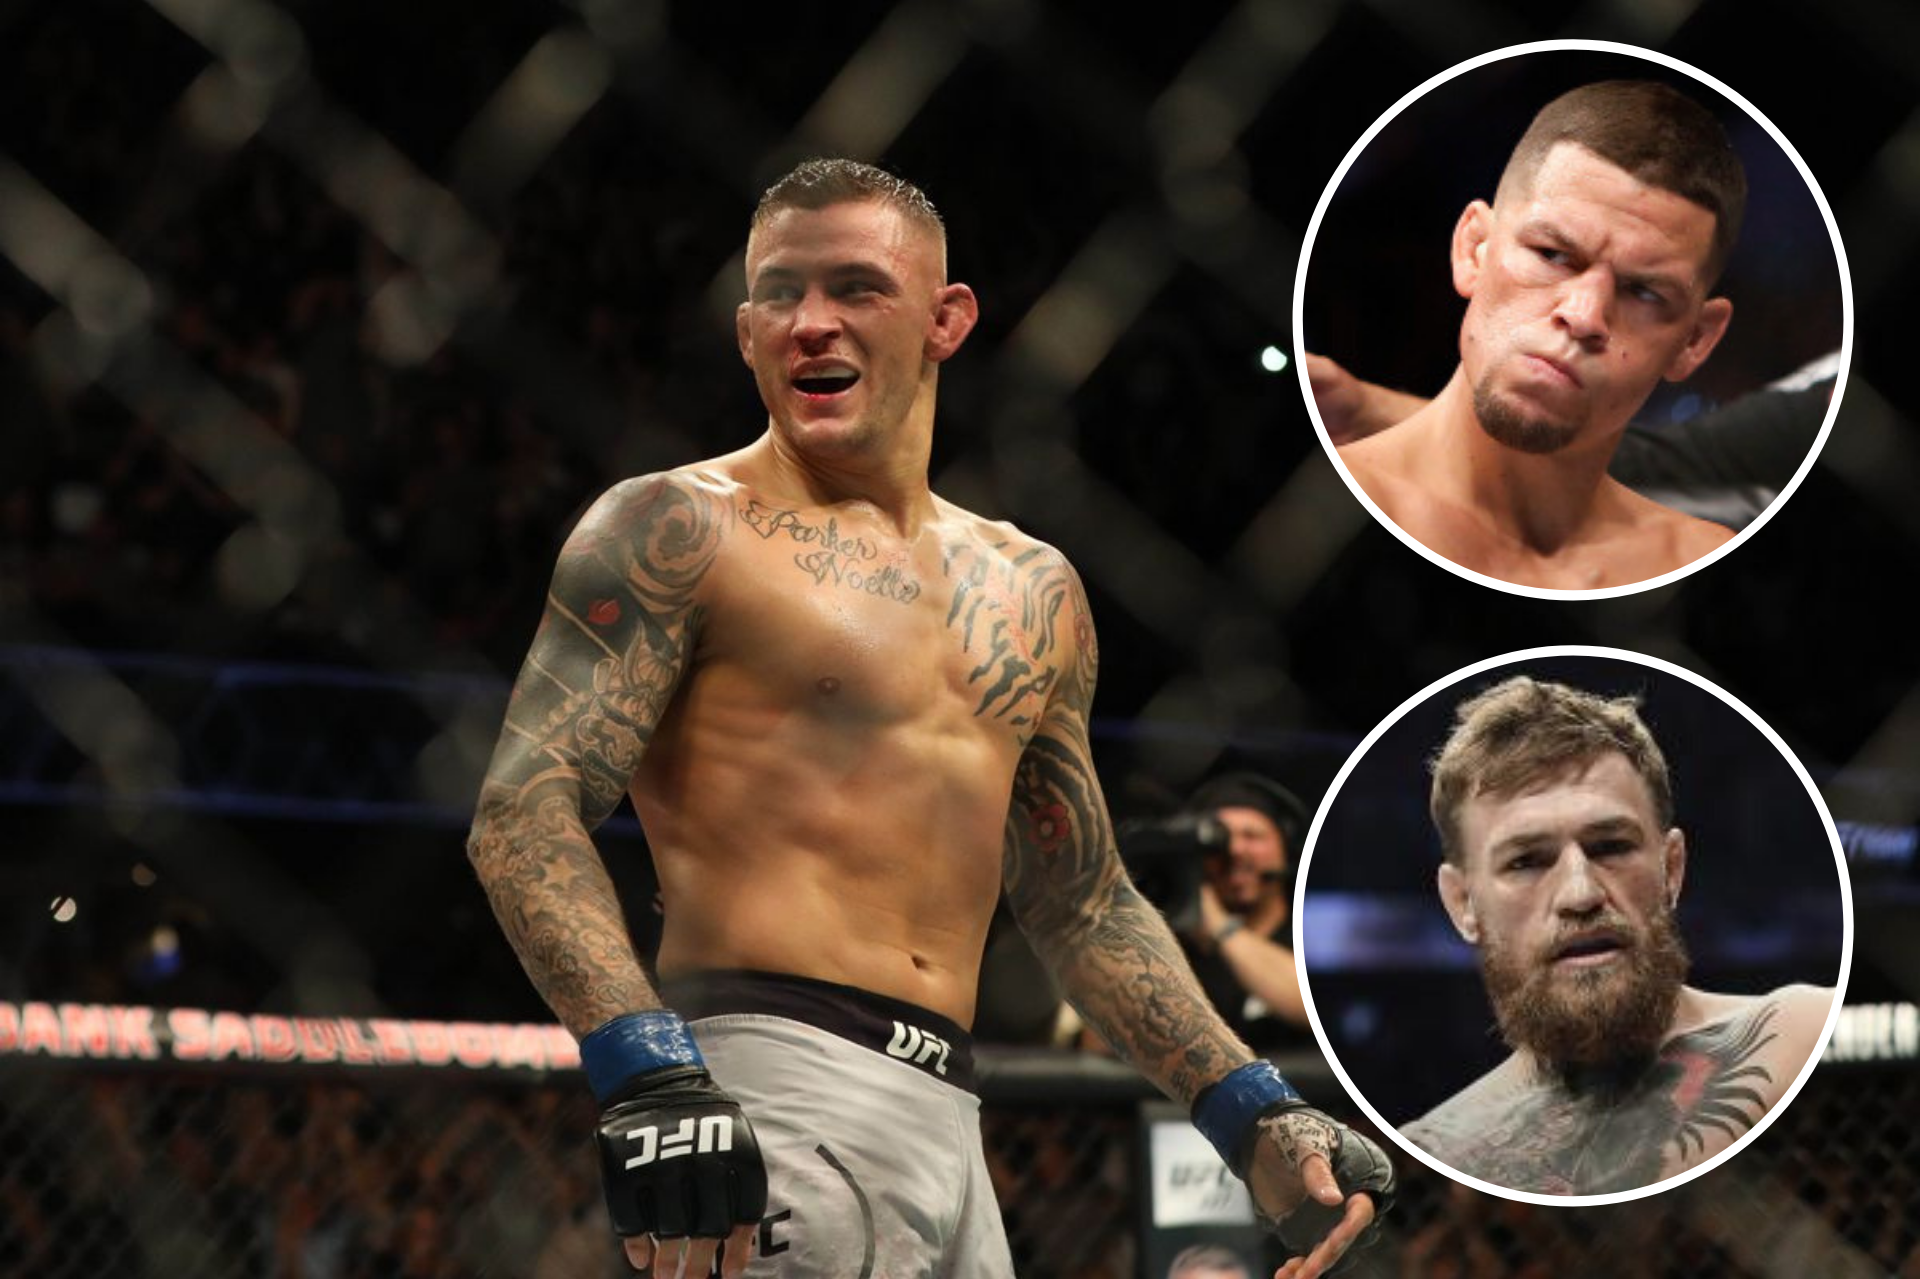 UFC News: Dustin Poirier ready to take on Conor McGregor or Nate Diaz - in MMA or boxing! - Poirier